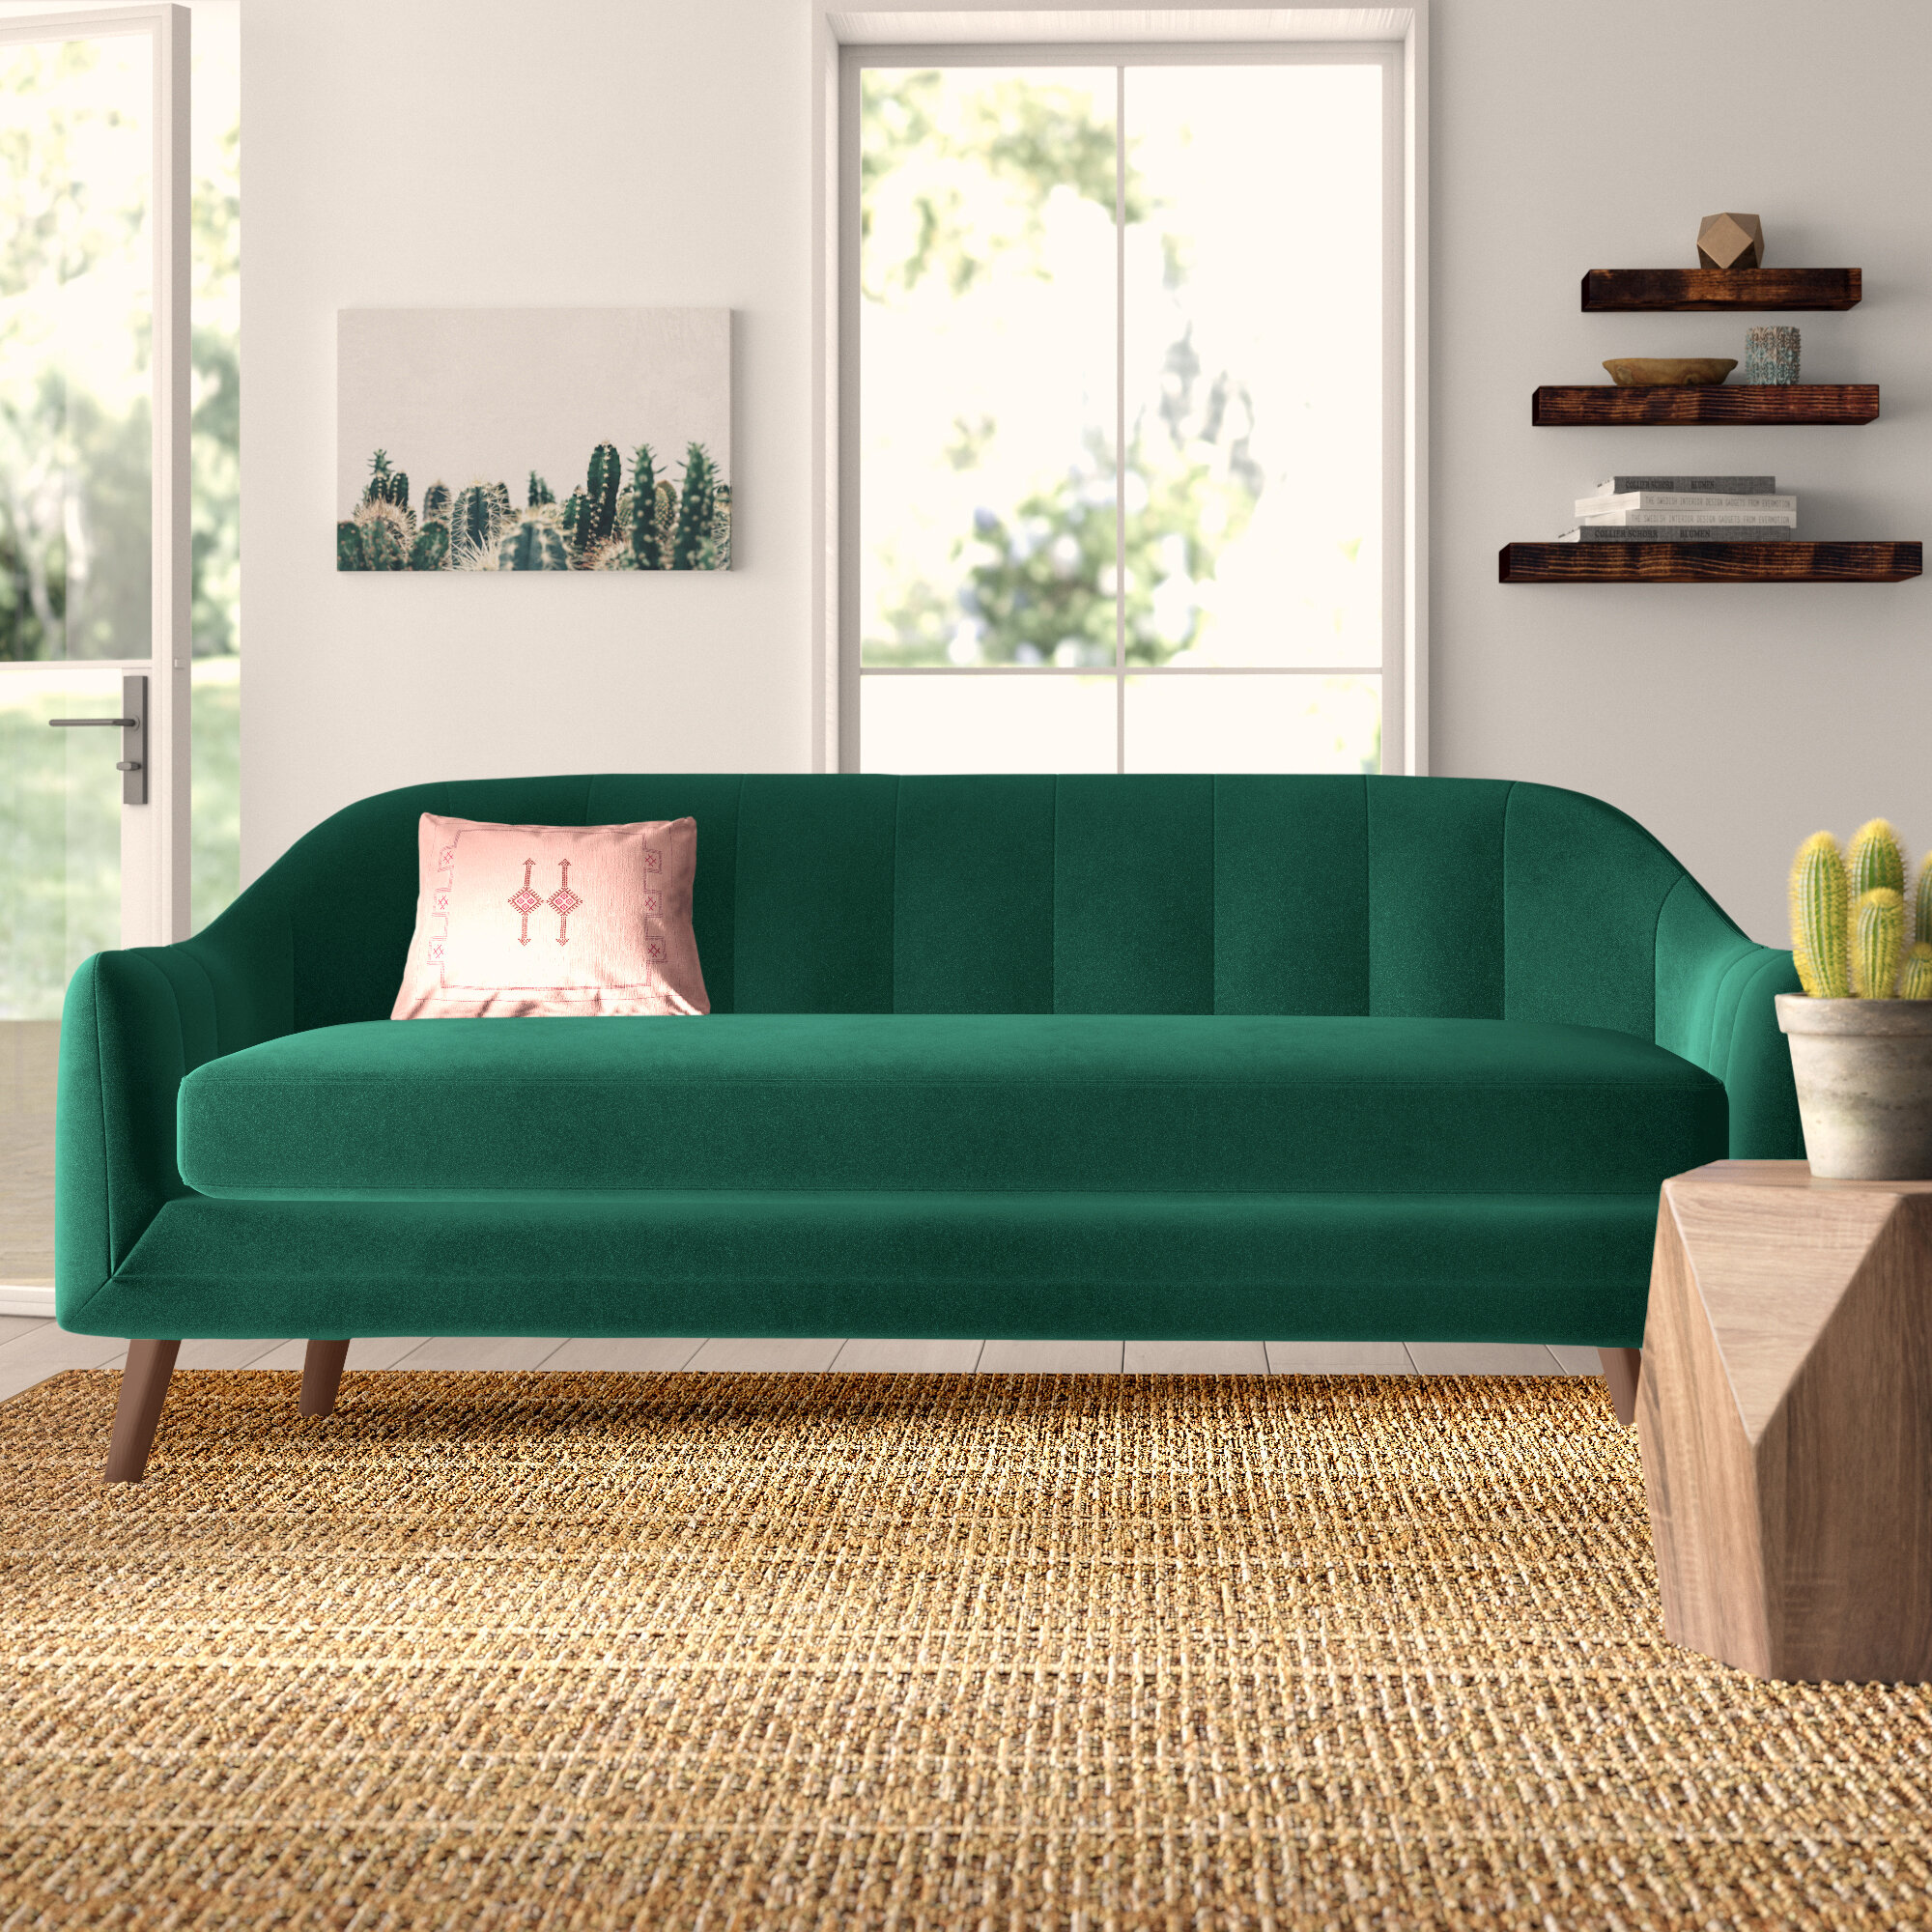 Picture of: Green Sofas Couches You Ll Love In 2020 Wayfair